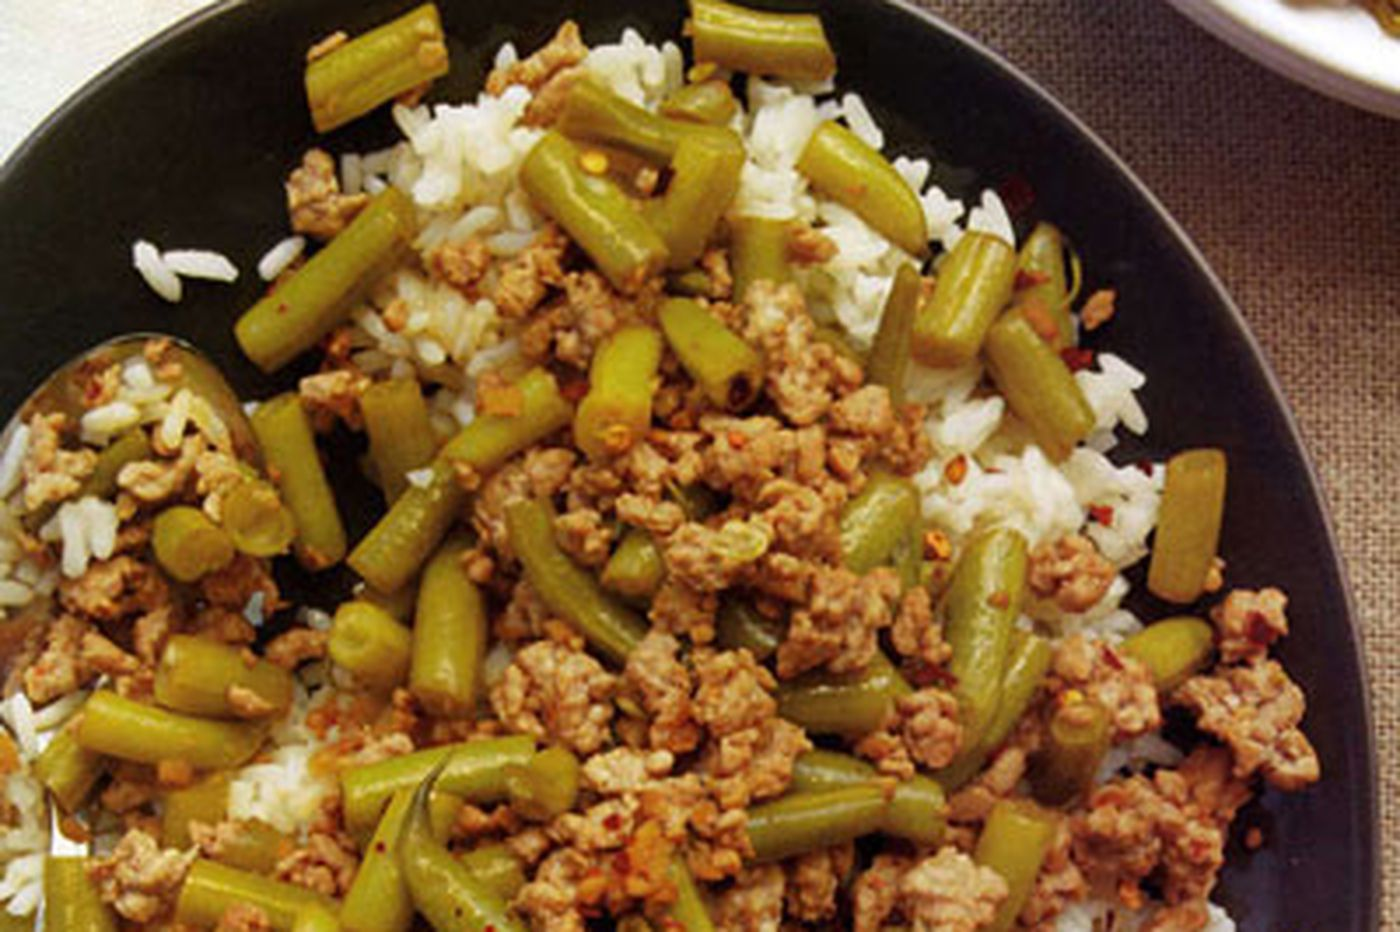 Rush Hour Gourmet: Sour Beans and Minced Pork